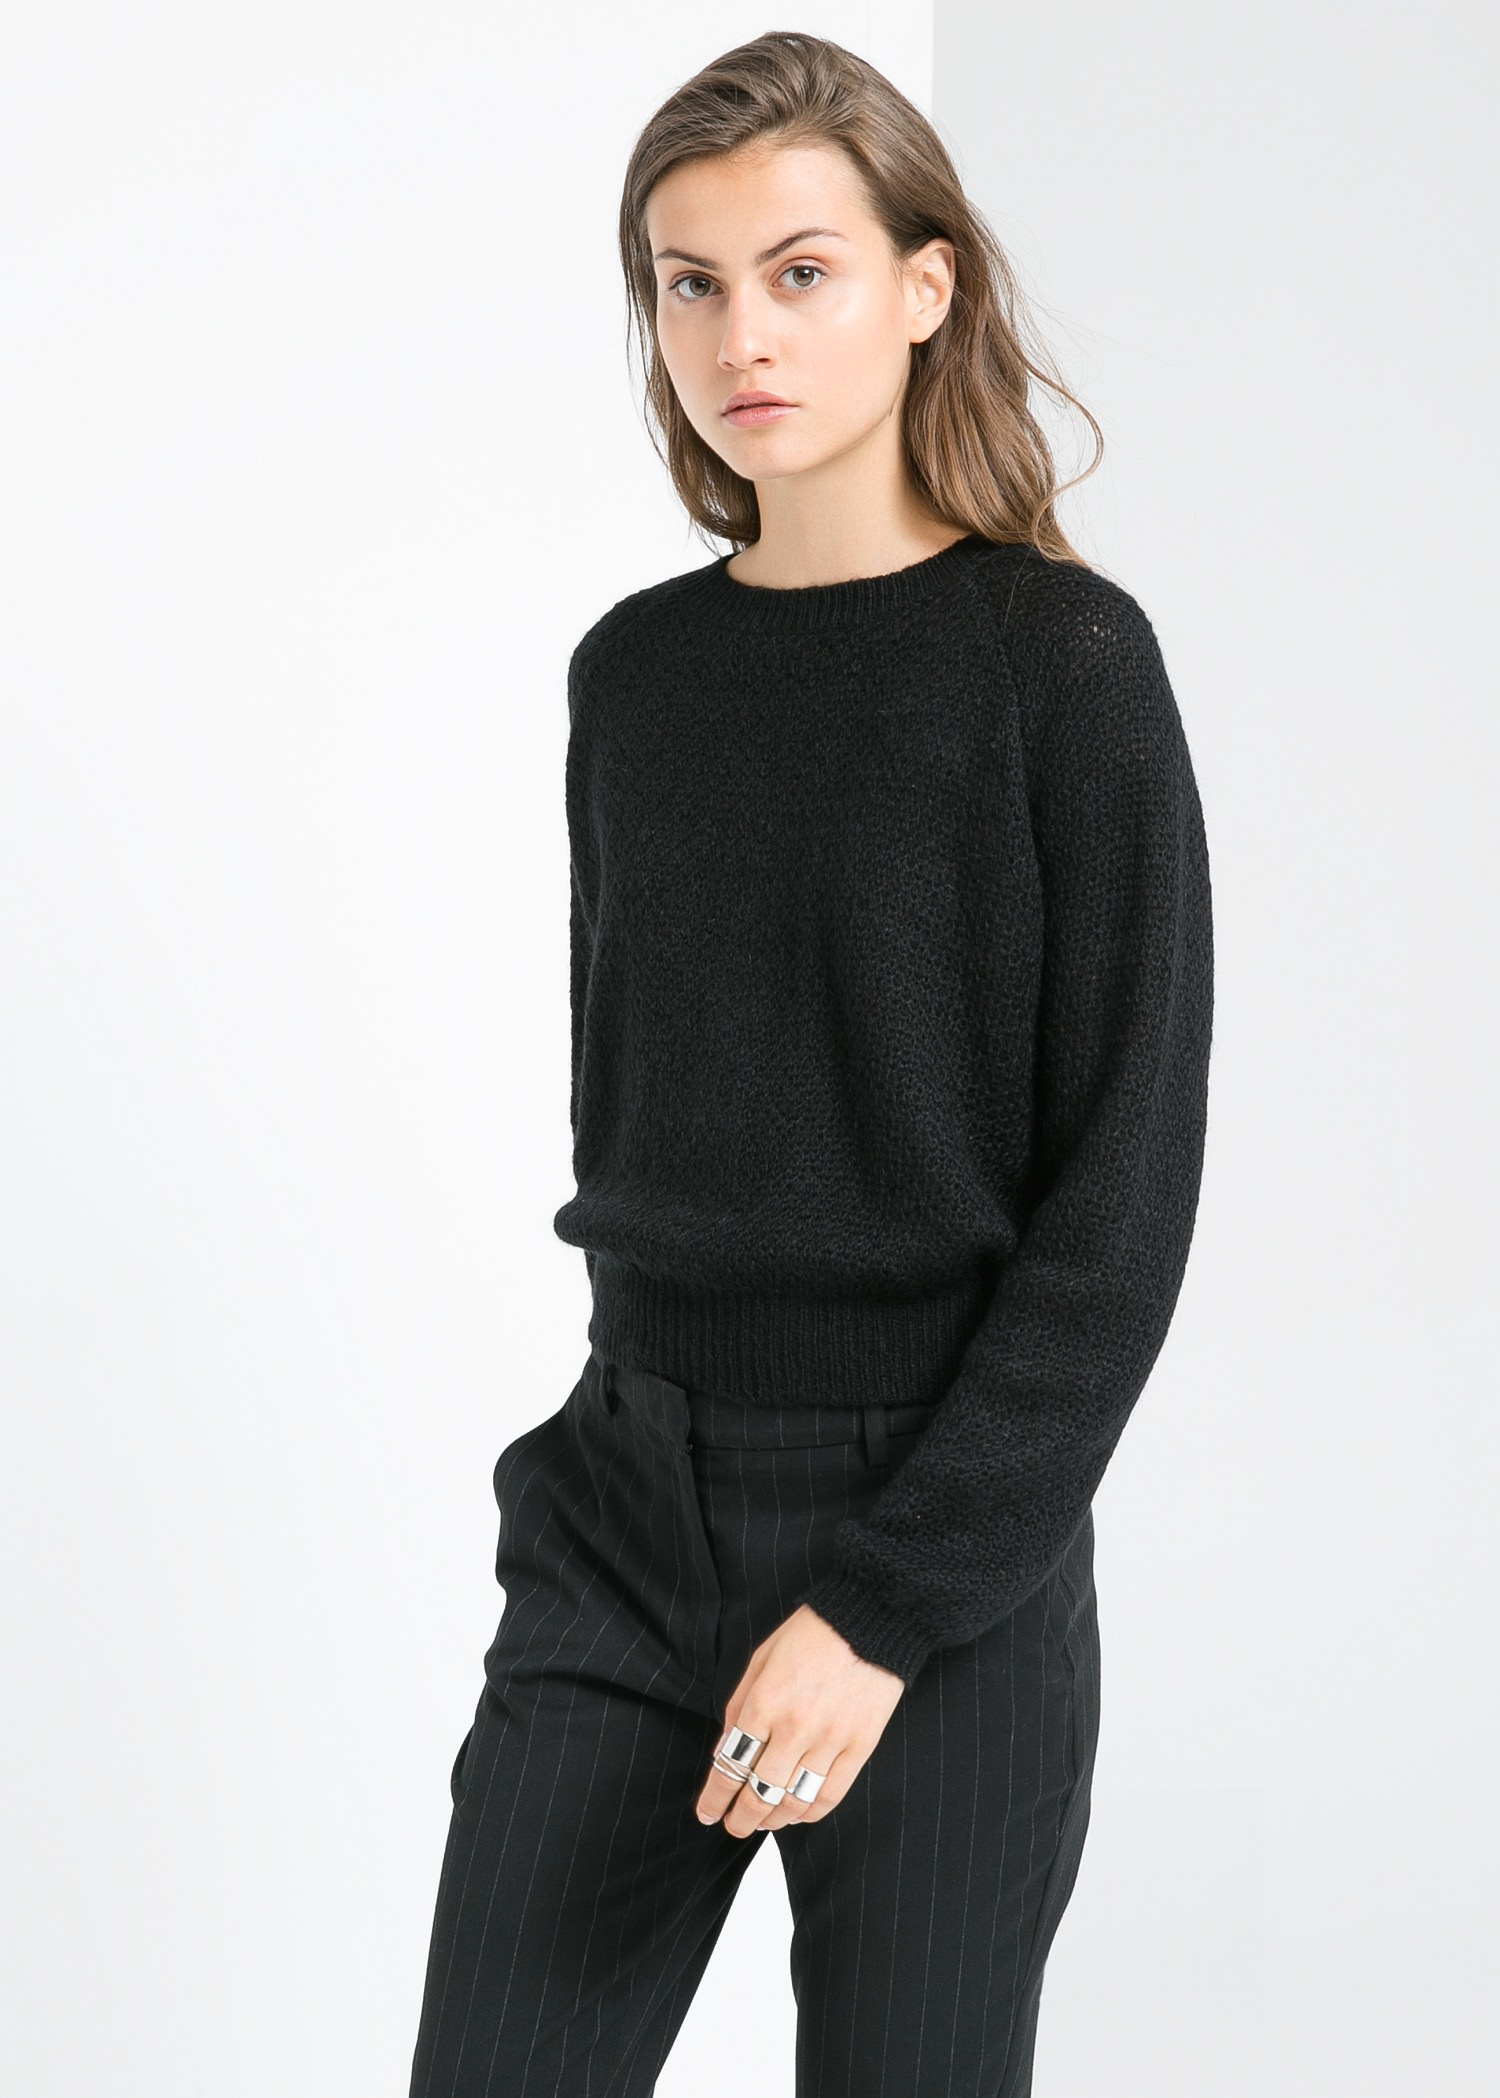 Mohair wool-blend sweater - Cardigans and sweaters for Women | MANGO